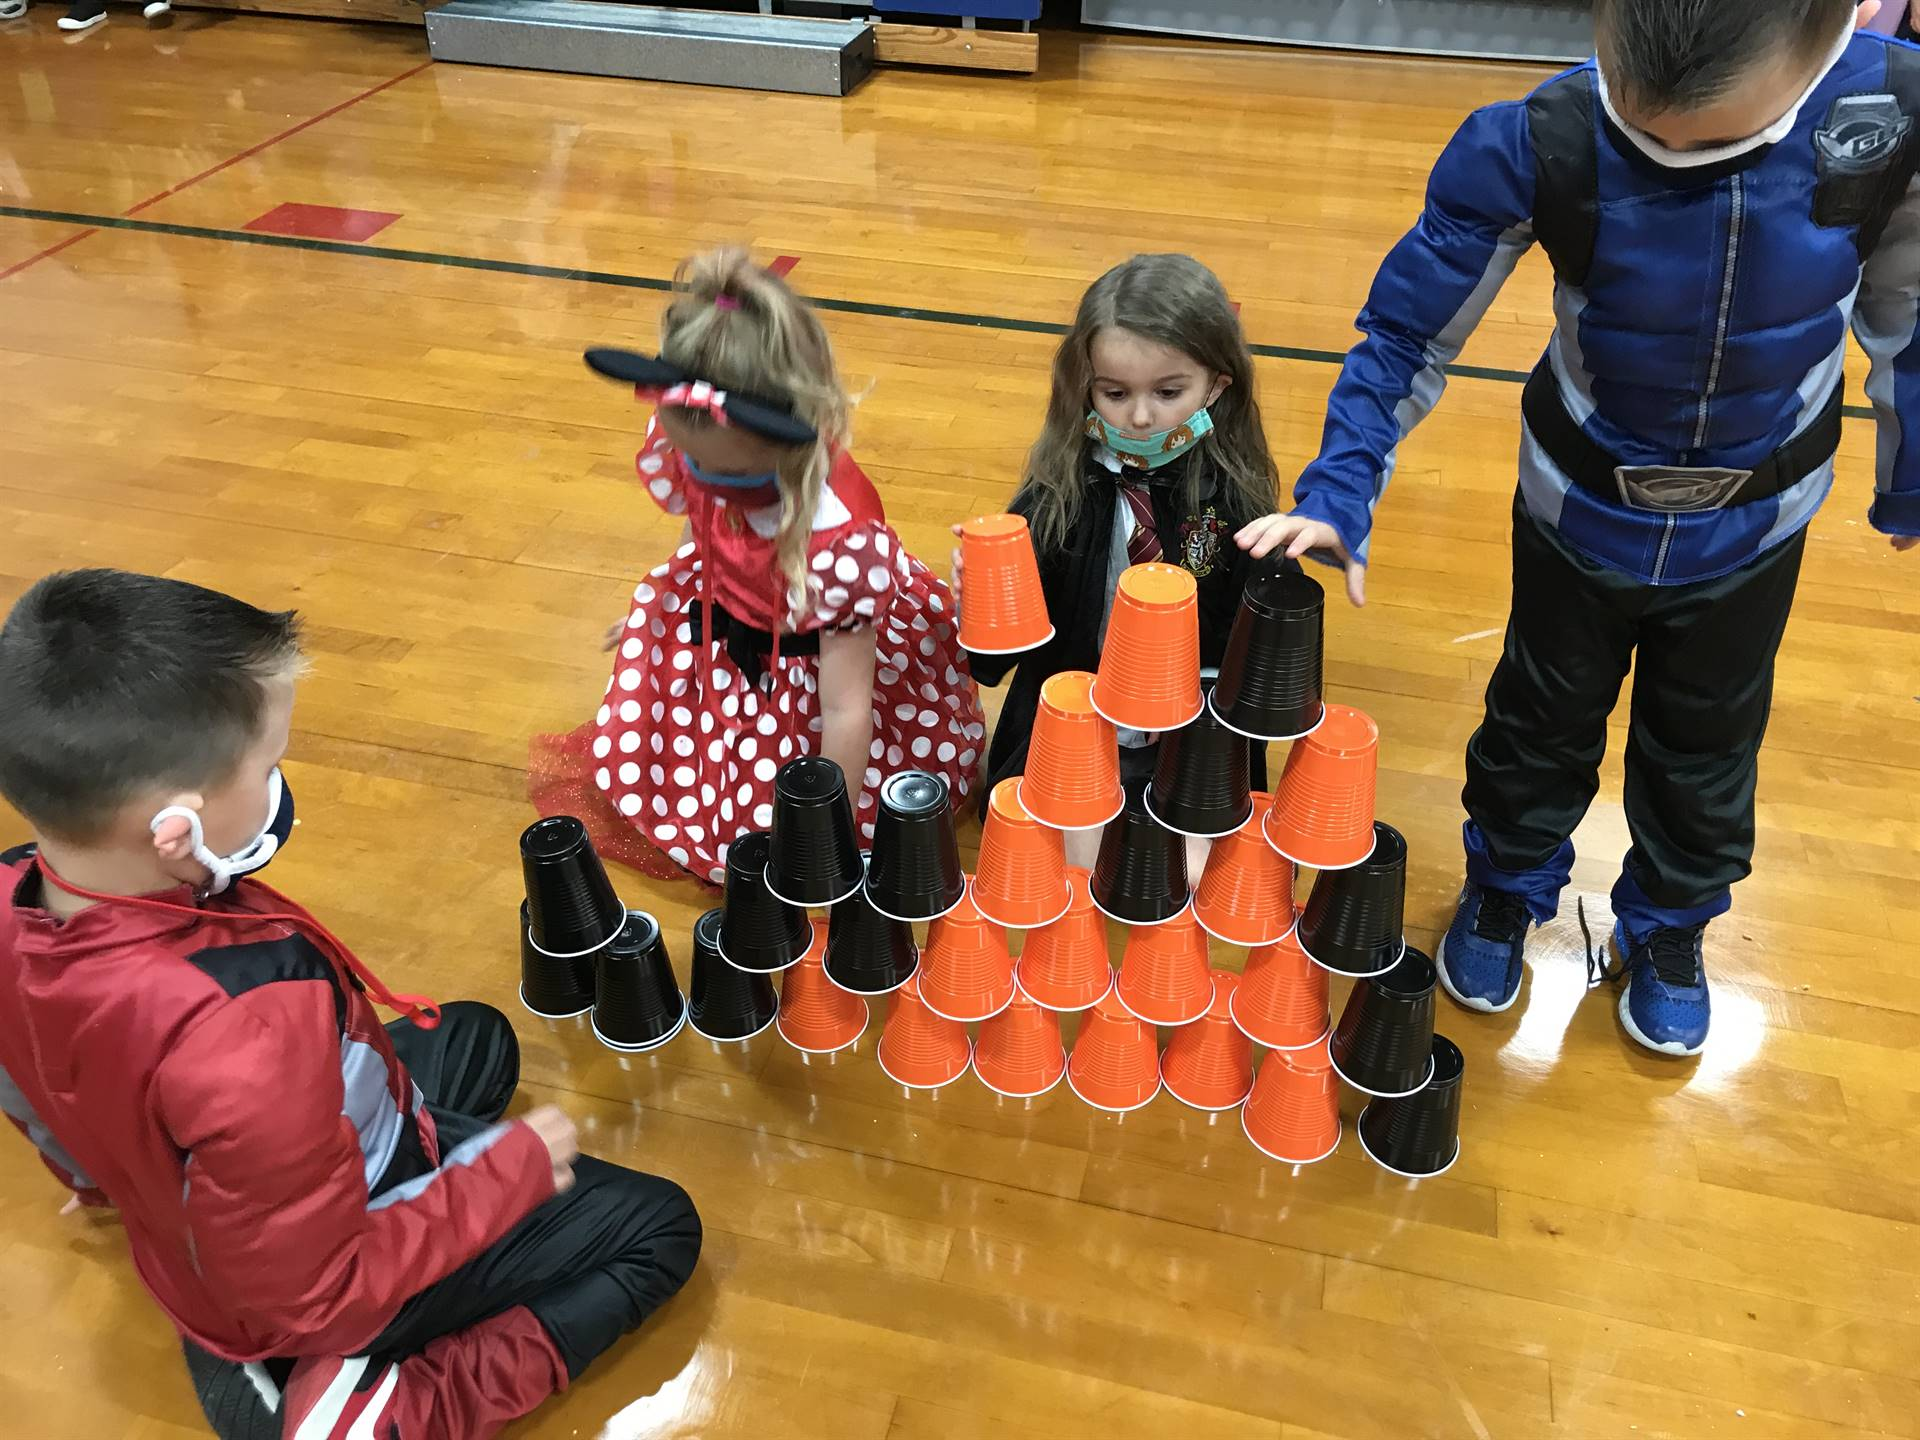 4 children building a tower with orange and black cups